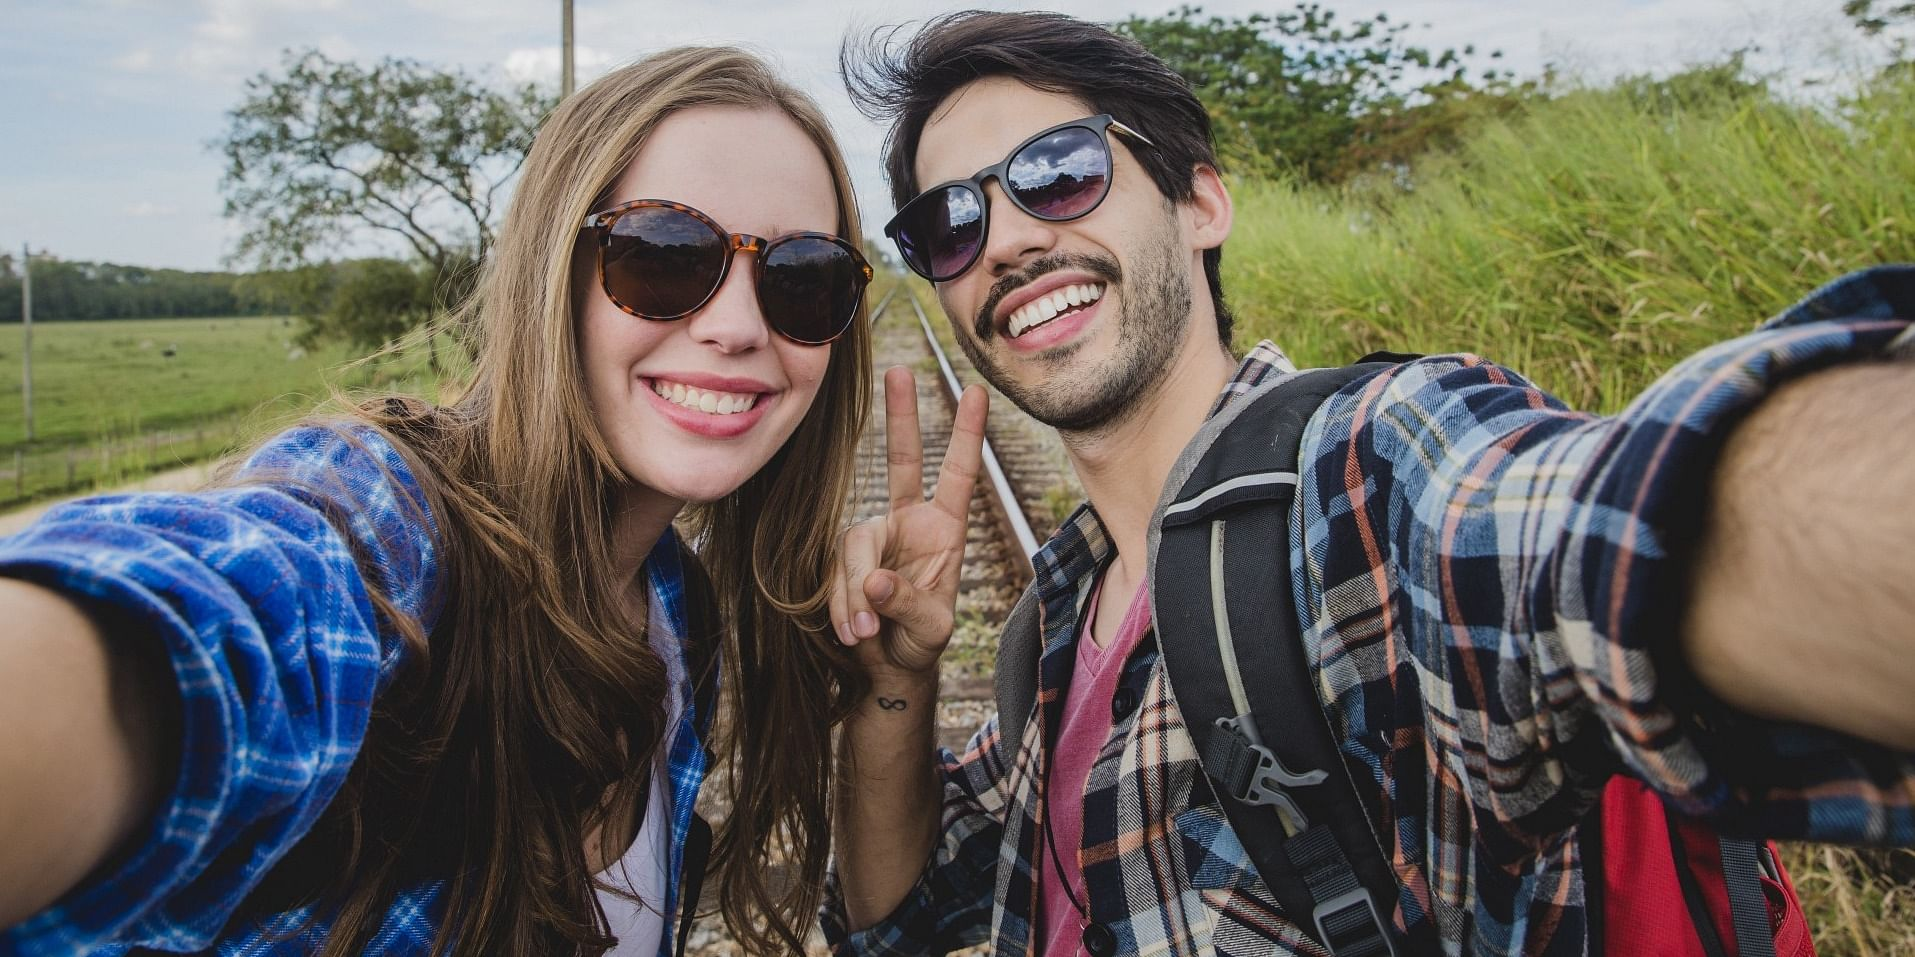 Social Travel is exactly the opposite of Solo Travel